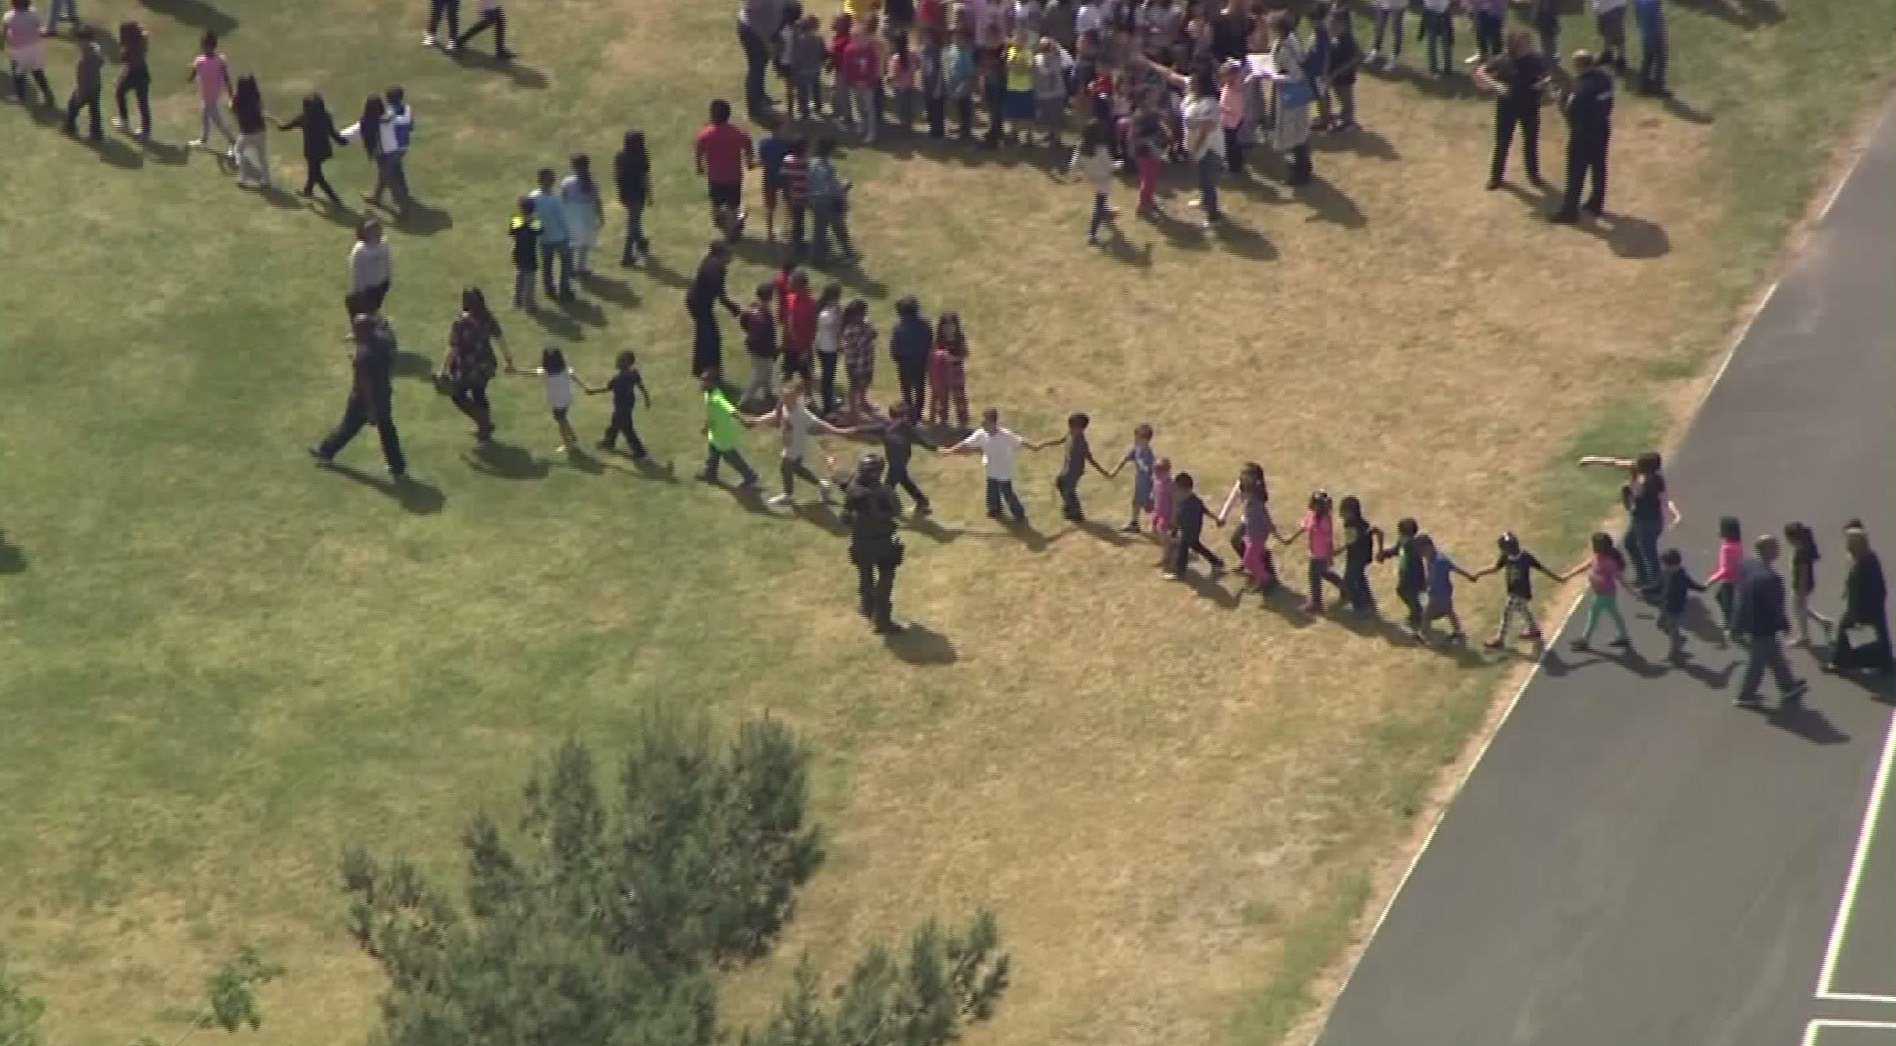 Students were evacuated from North Park Elementary School in San Bernardino on April 10, 2017 following a possible murder-suicide shooting on campus. (Credit: KTLA)